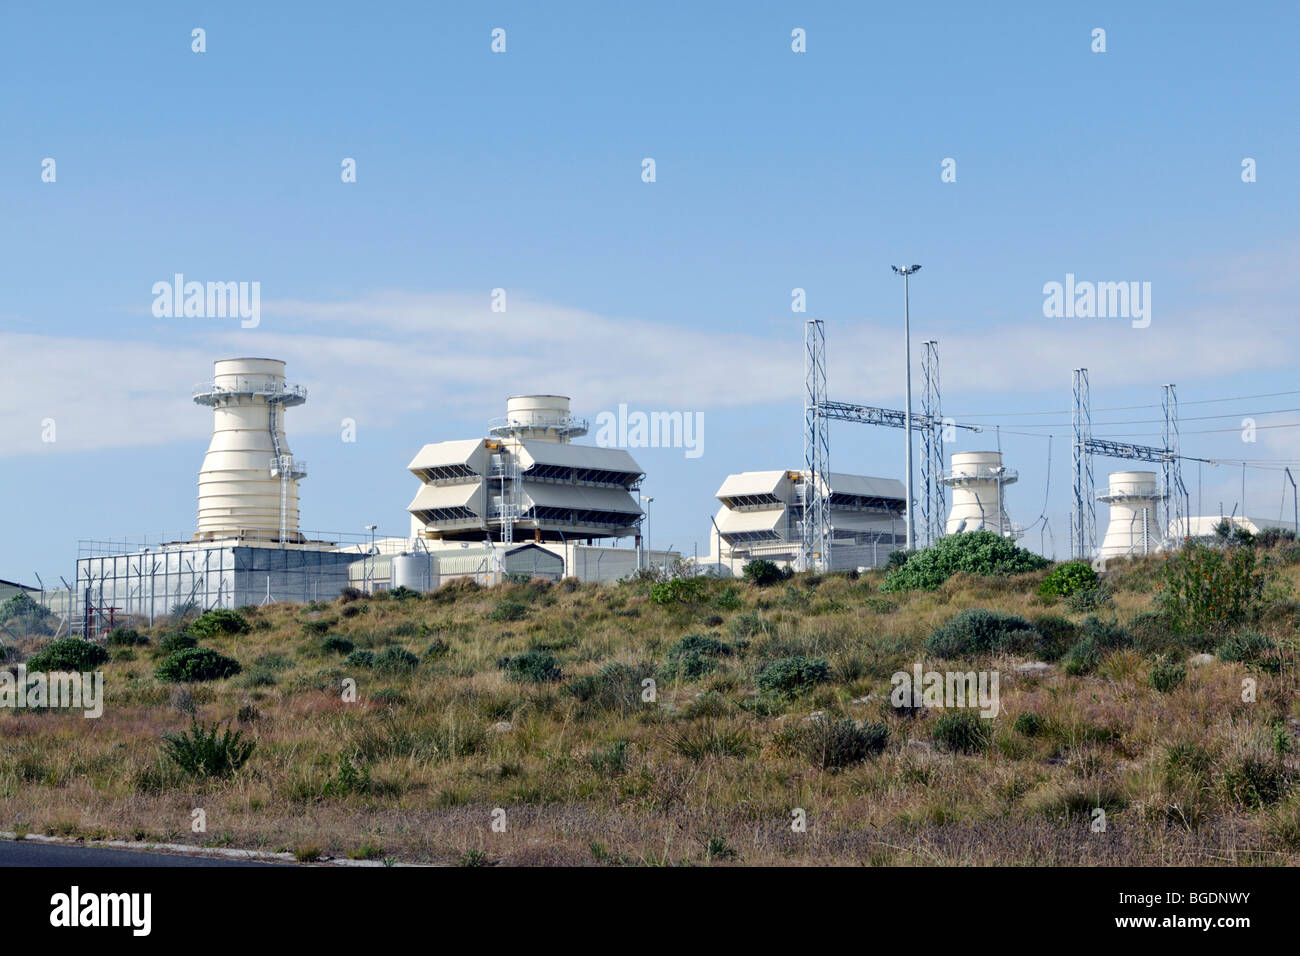 Open-cycle gas-turbine generators at Atlantis, near Cape Town, Western Cape Province, South Africa. - Stock Image